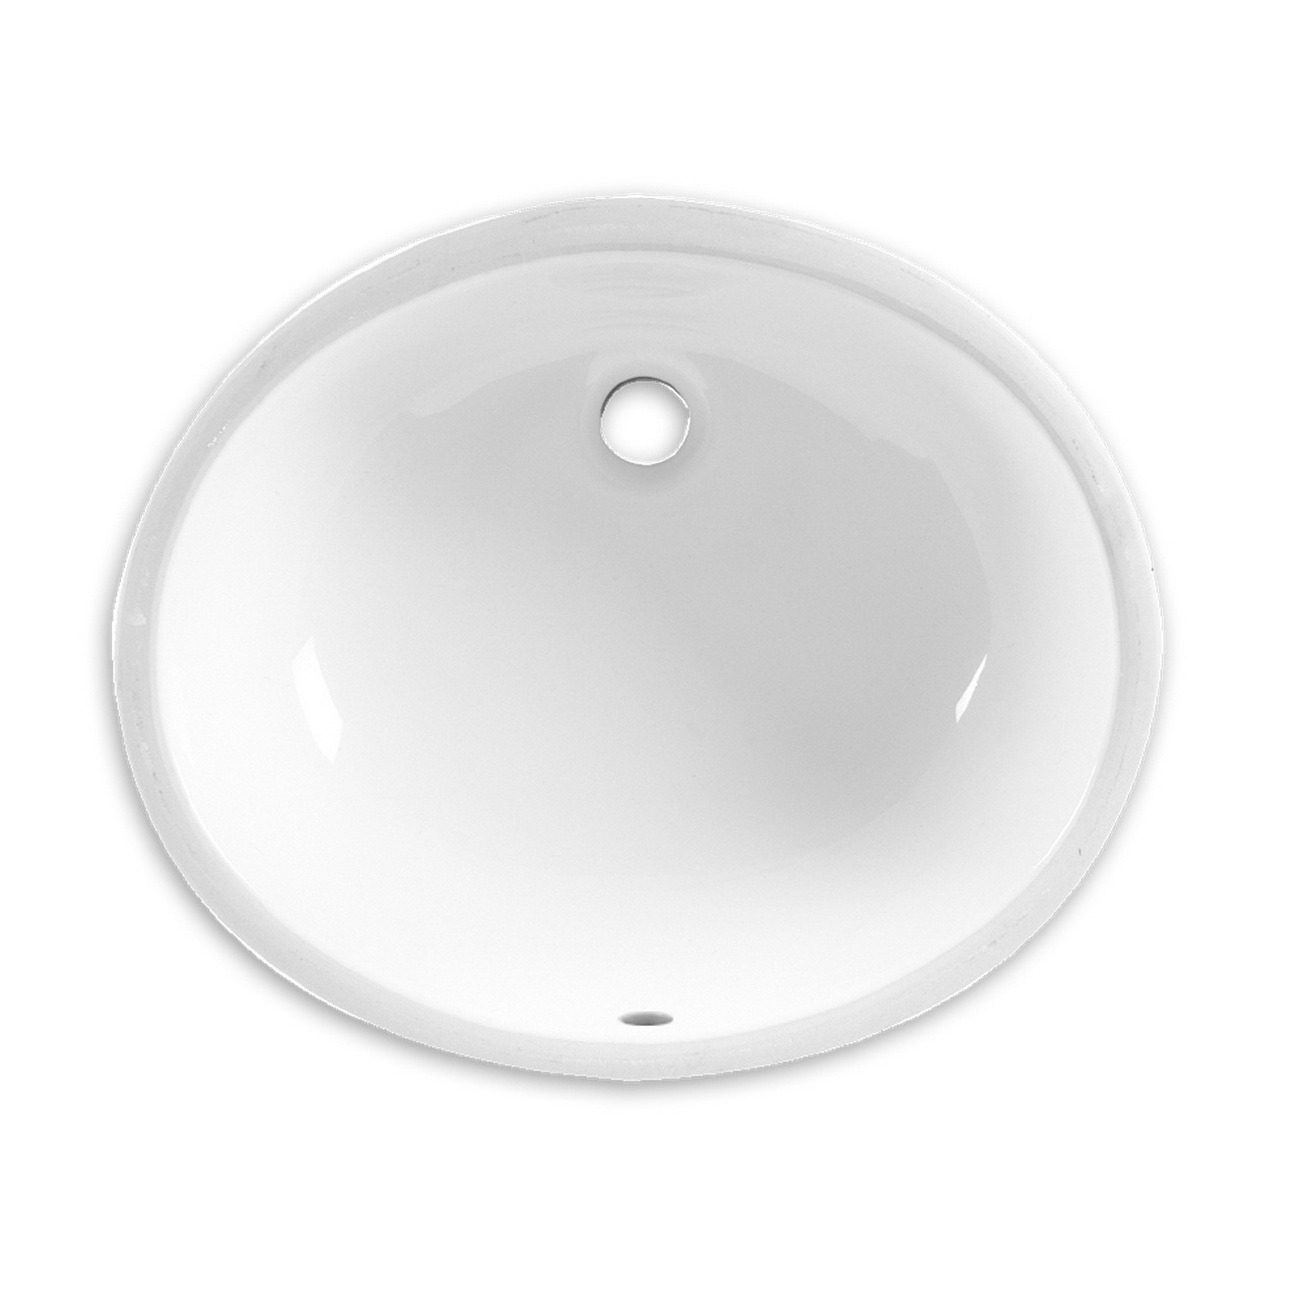 American Standard Ovalyn™ 0495.221.020 White Vitreous China Under Mount Undercounter Sink, 1-Bowl